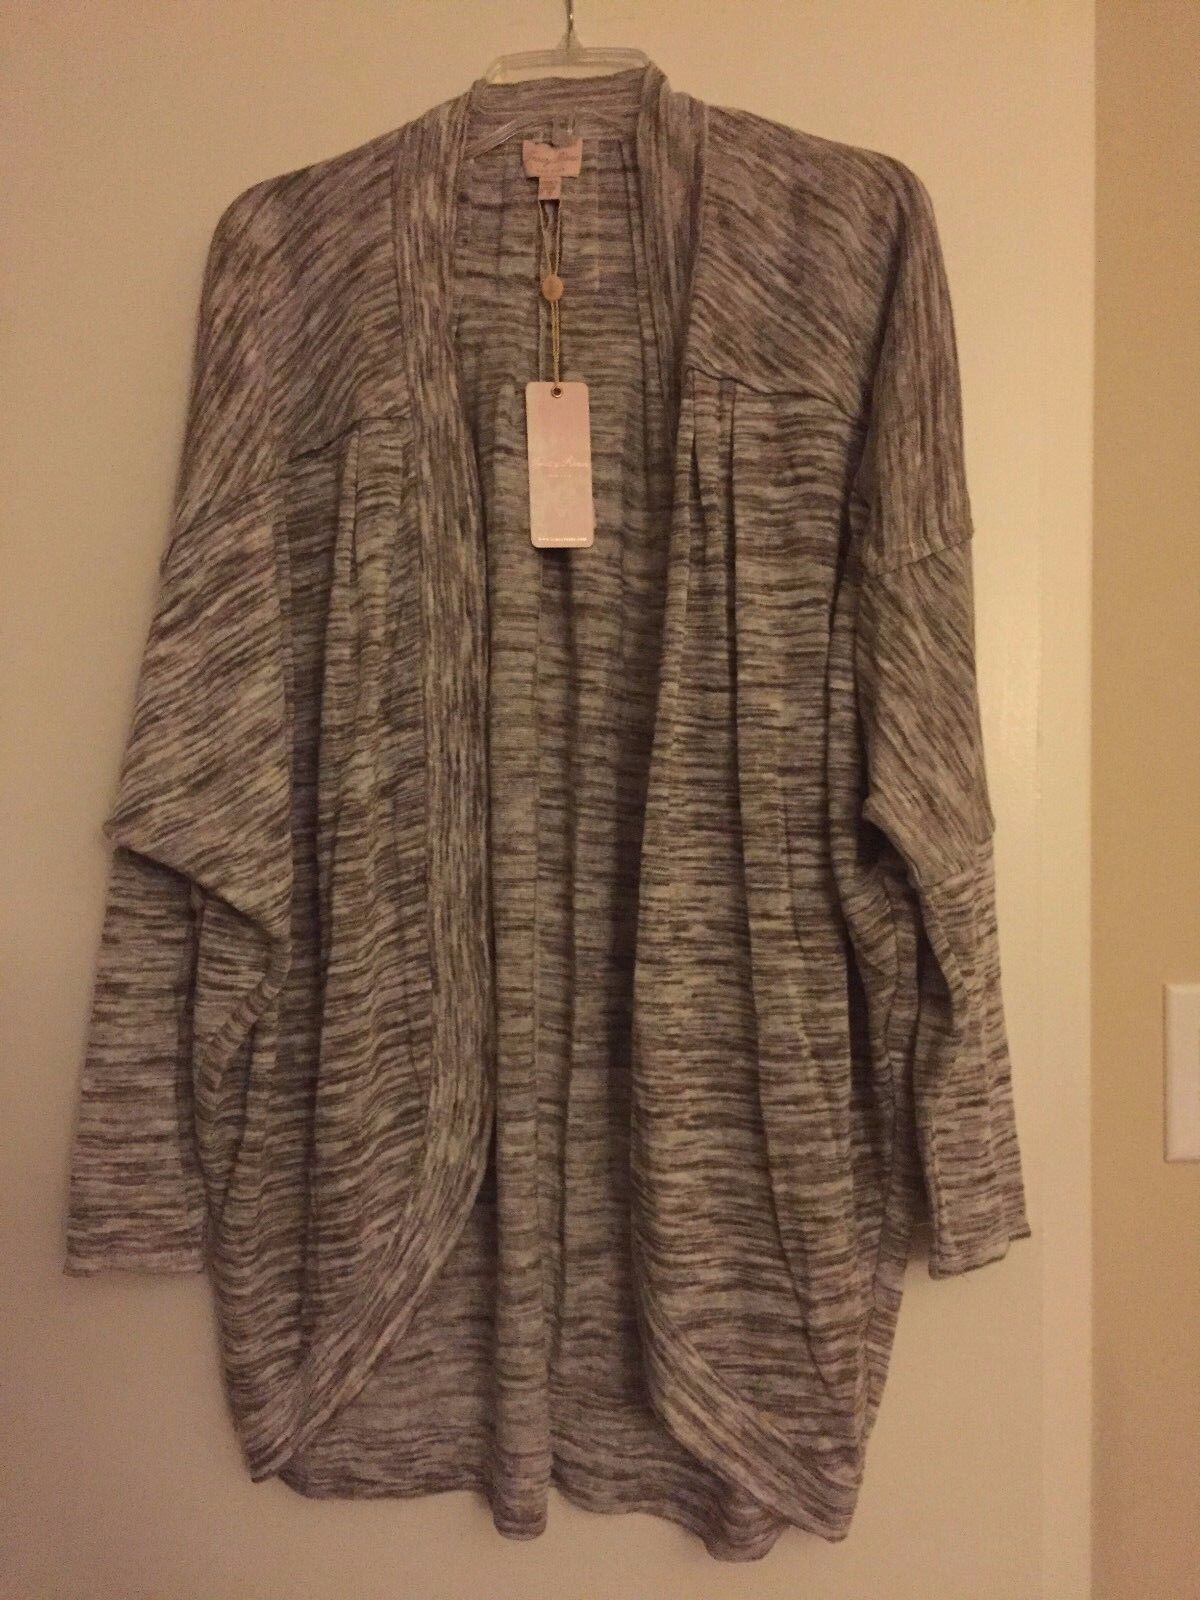 NWT Tracy Reese Brown Cocoa Space Space Space Dye Linen Draped Cardigan  295 - M 504e39